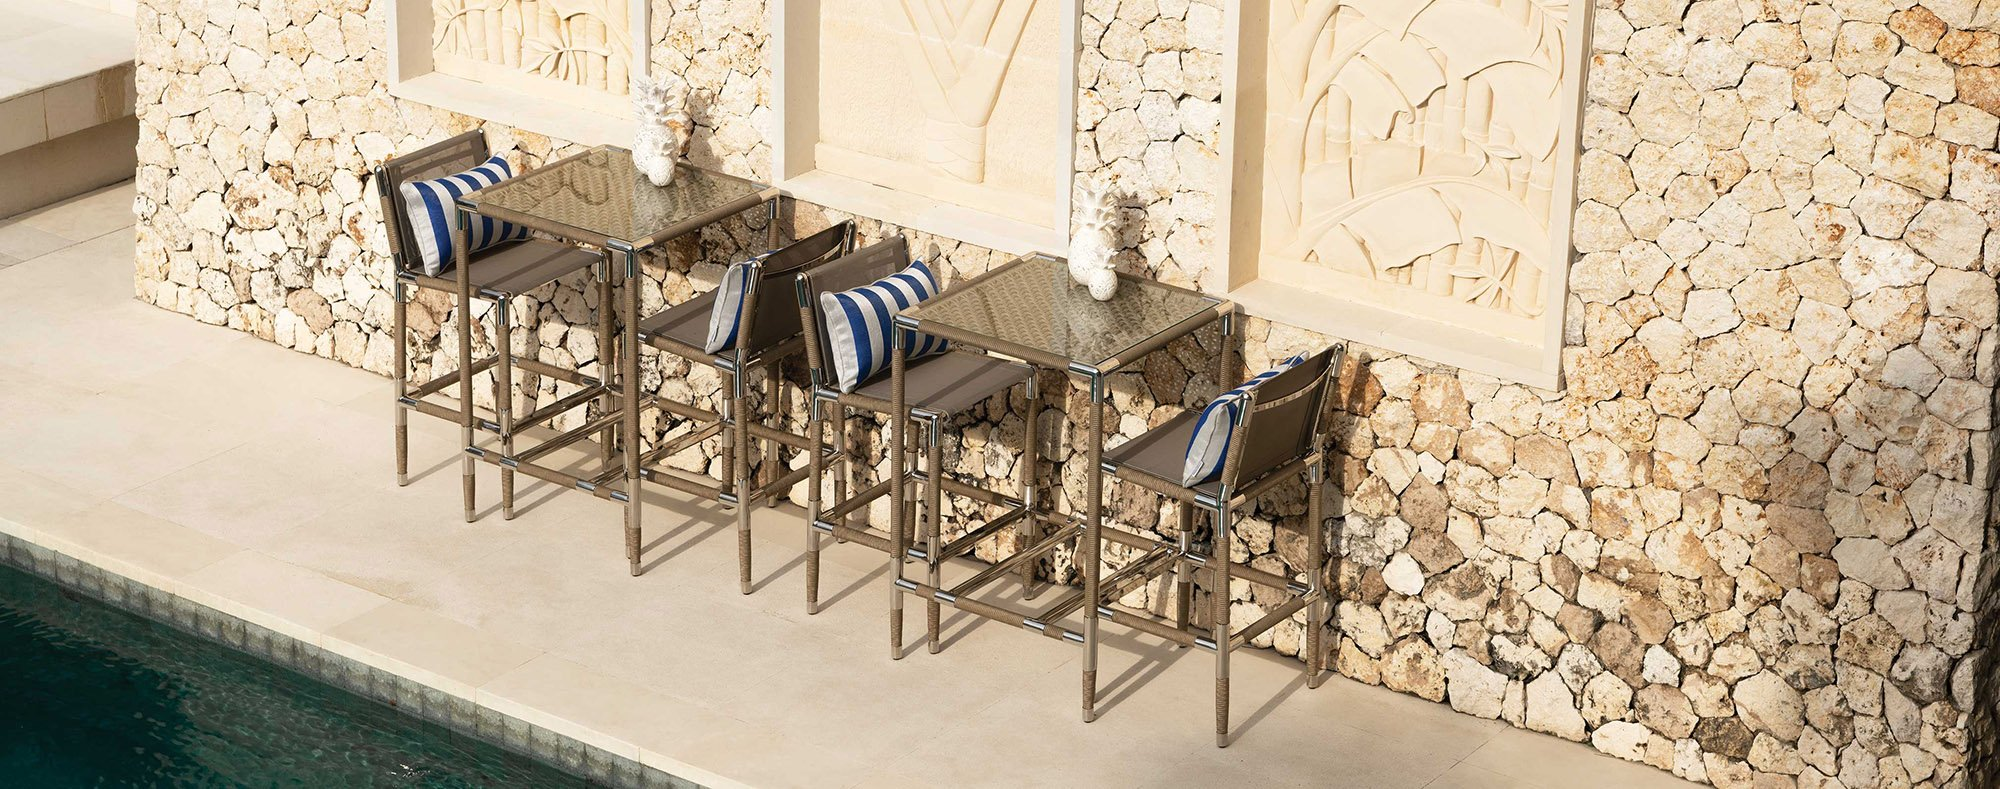 How to Create an Outdoor Kitchen Bar to Impress